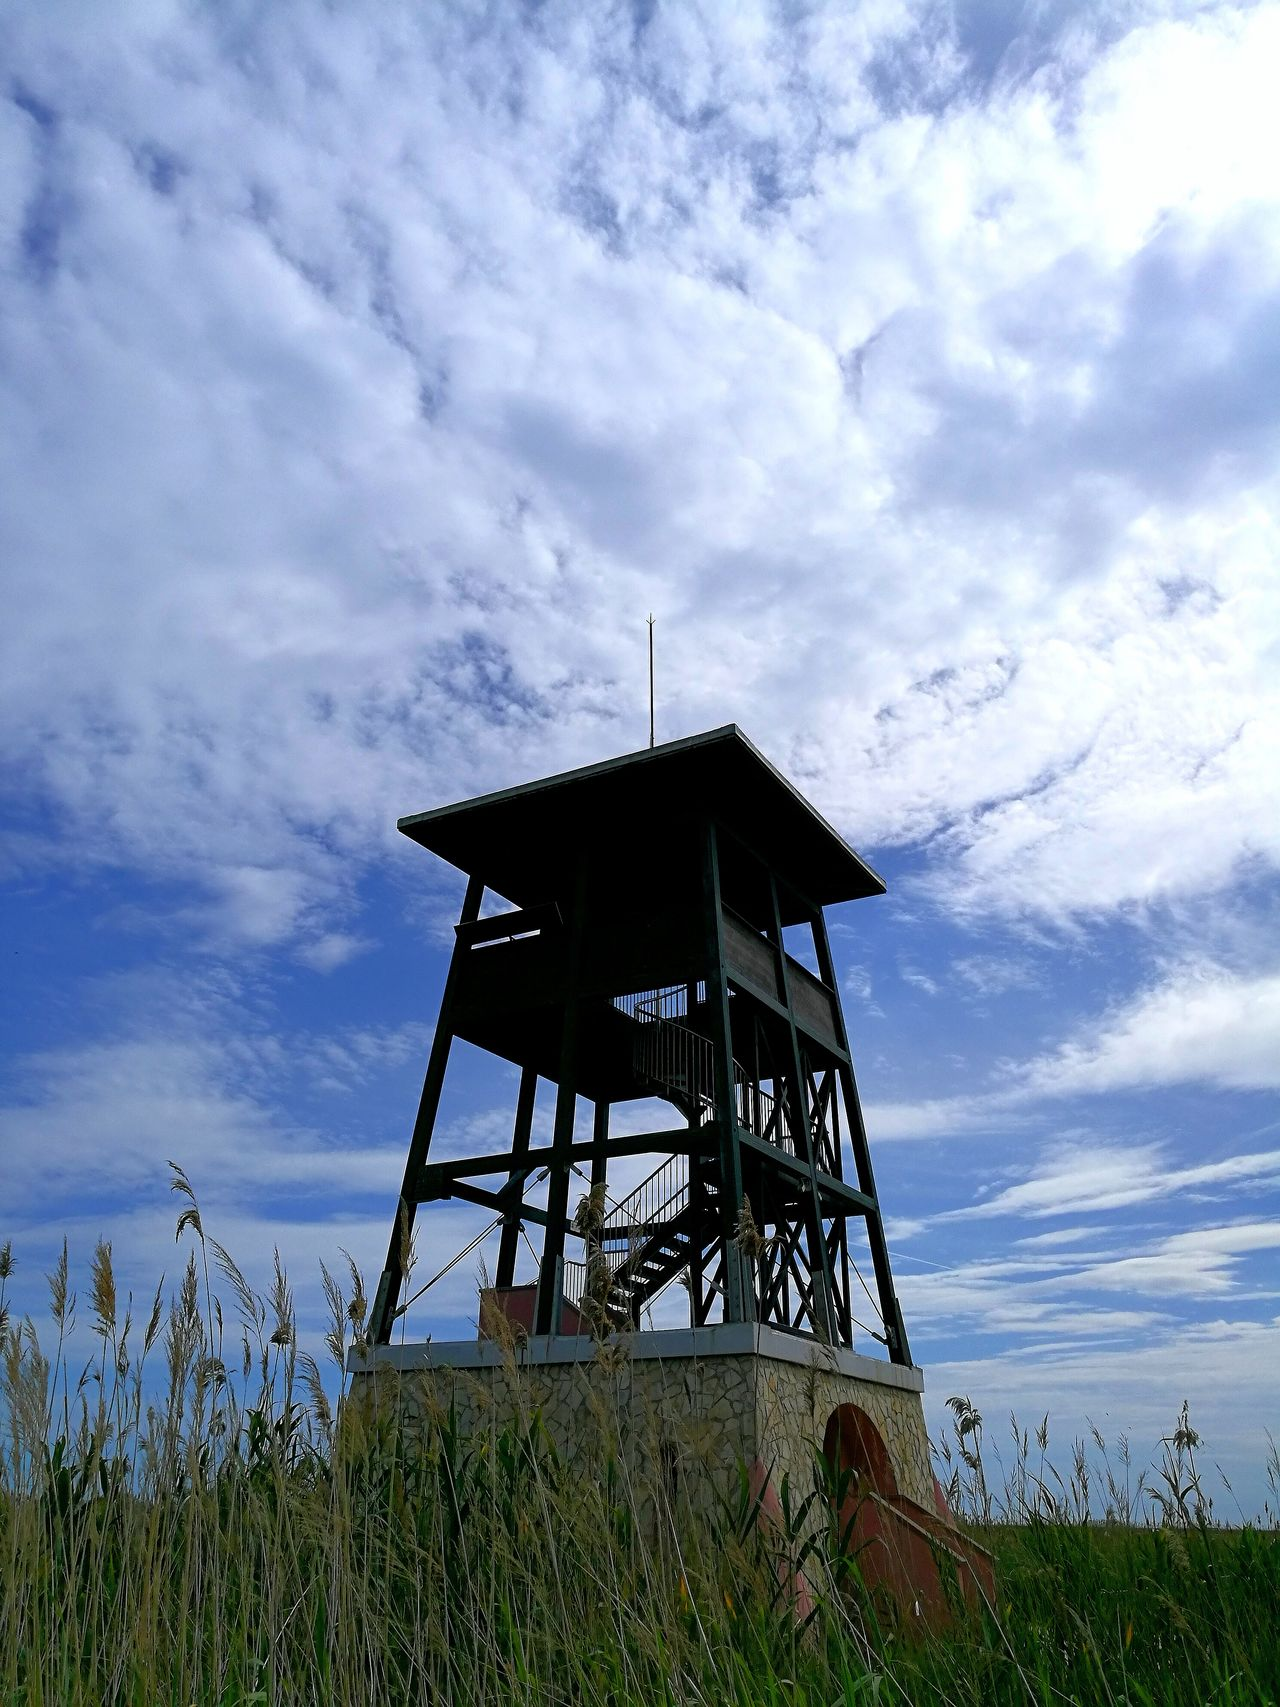 Cloud - Sky Built Structure Architecture Sky Lookout Tower Safety Building Exterior Low Angle View Lifeguard Hut Outdoors Lifeguard  Day Nature Sea No People Water Torre Deltadelebro Deltadelebre Delta De L'Ebre Delta Del Ebro Torre Picoftheday Tranquility Beauty In Nature